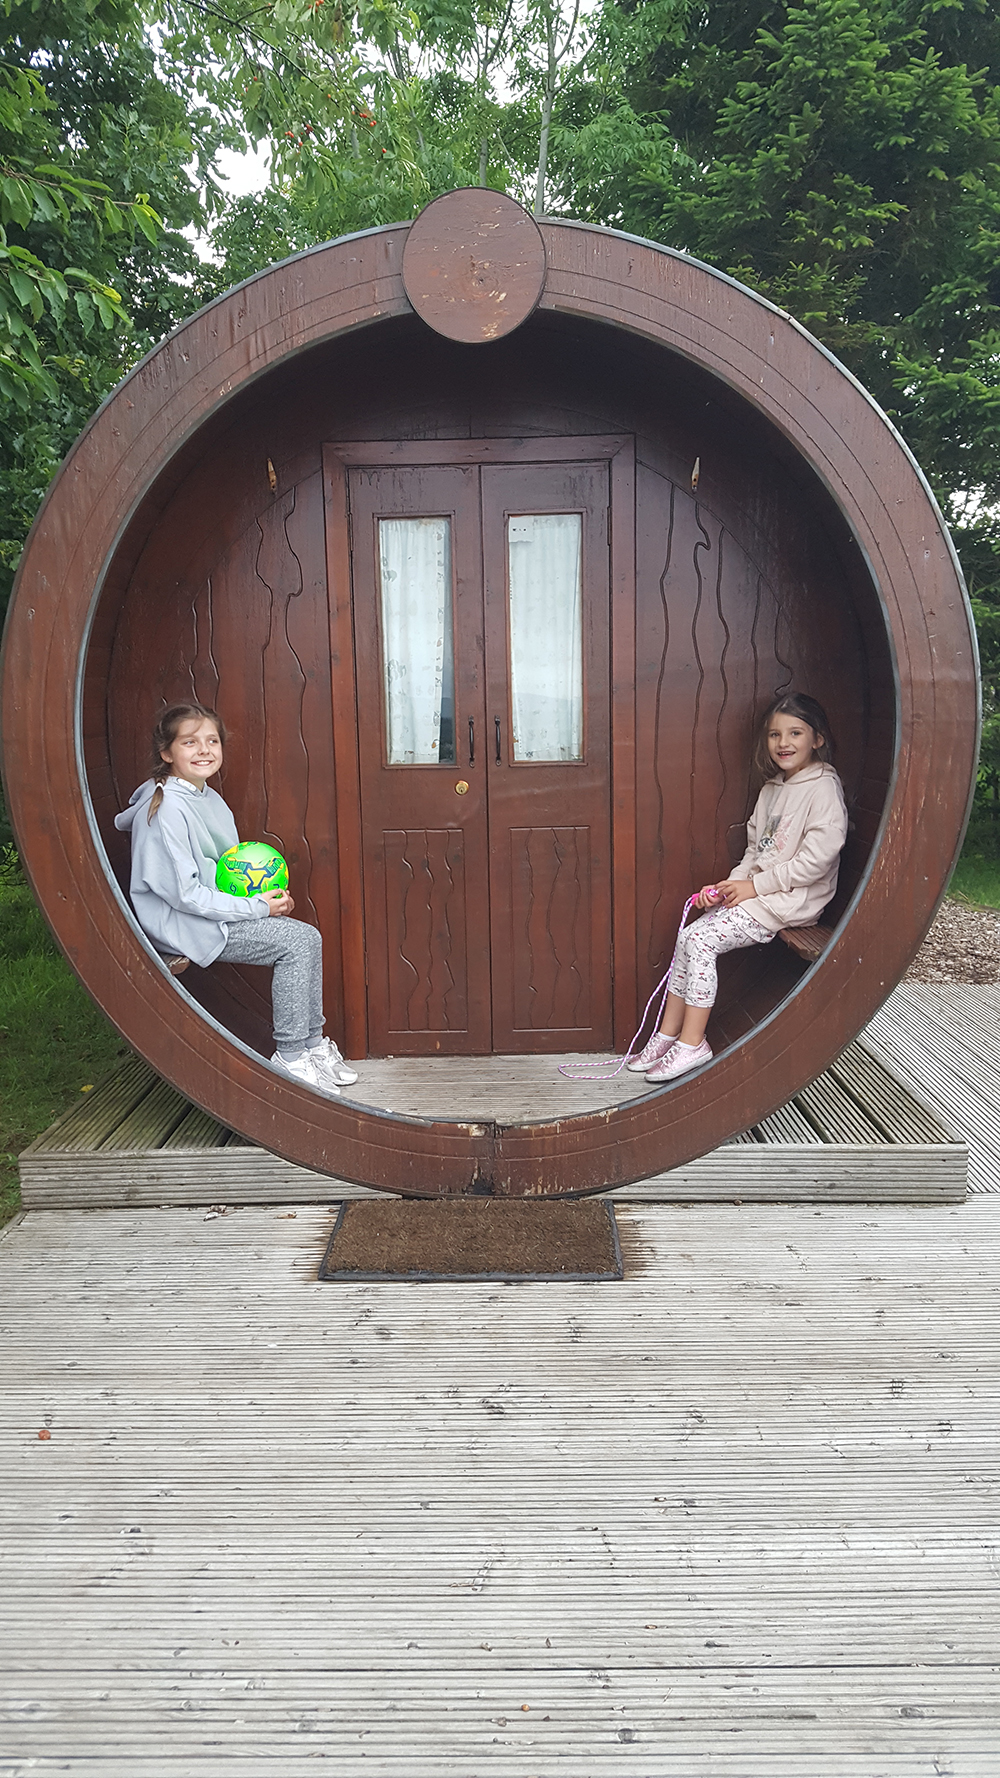 'Discovered a real Hobbit Hut dad' - It's a Microlodge!